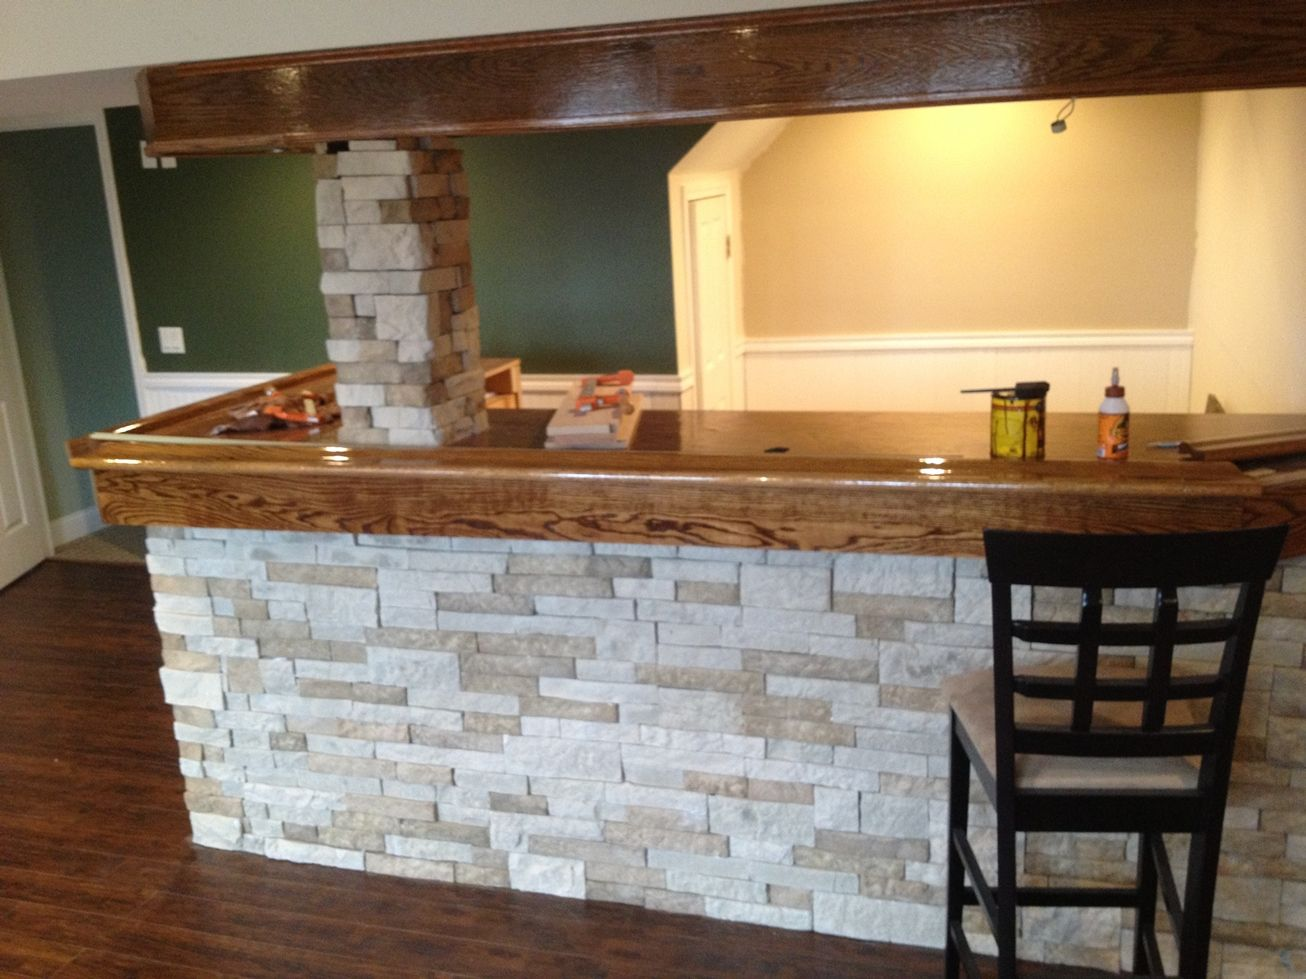 My homemade basement bar so far with AirStone from Lowe's